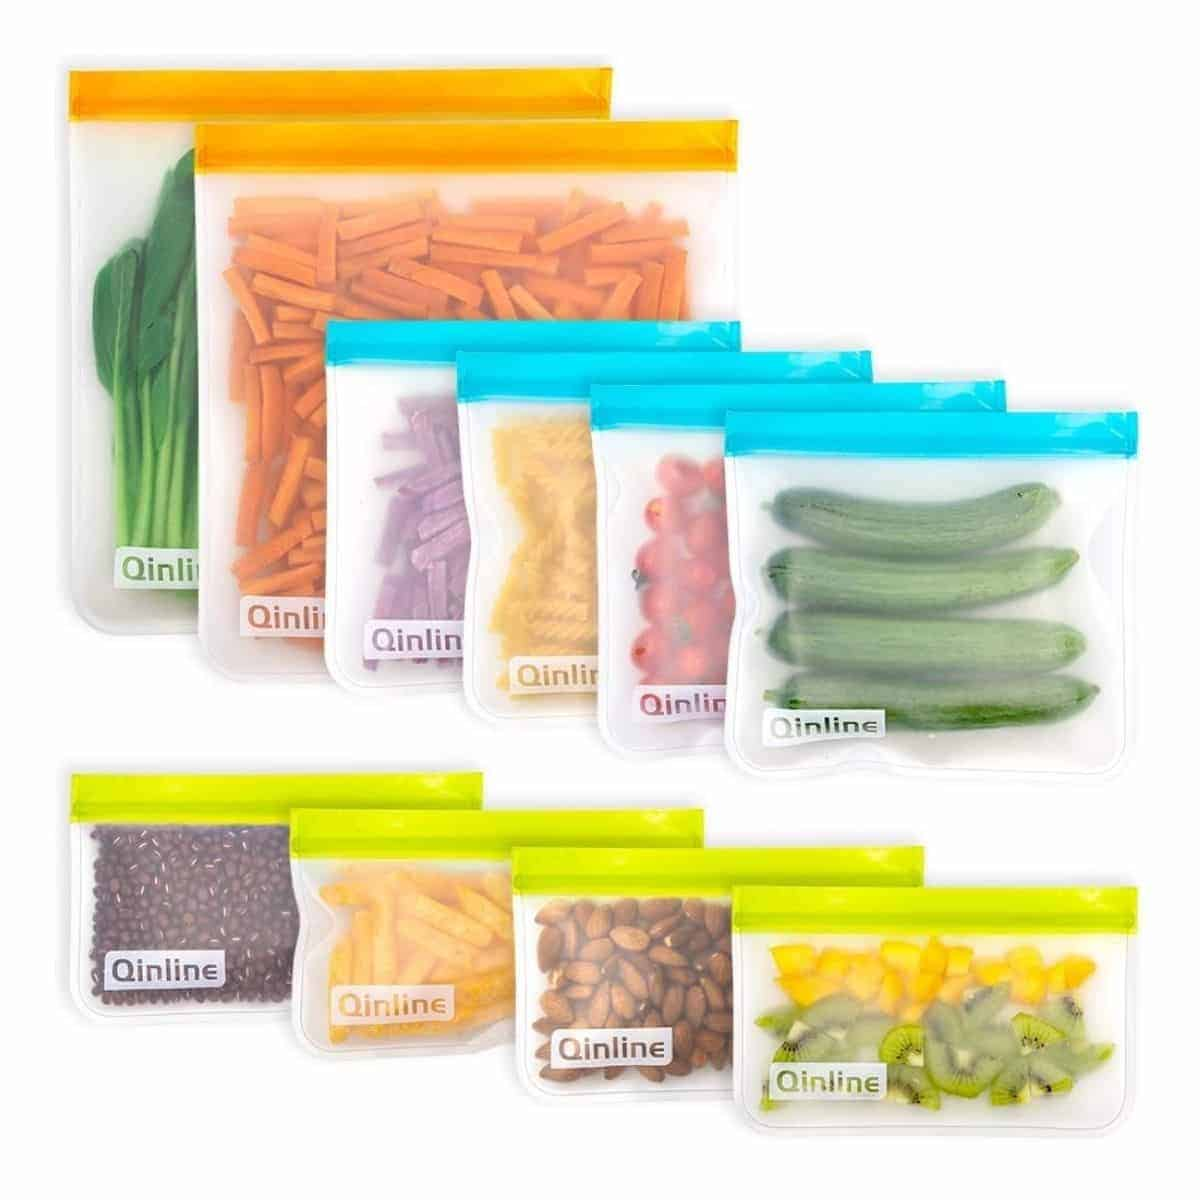 Ten reusable food storage bags of different sizes.